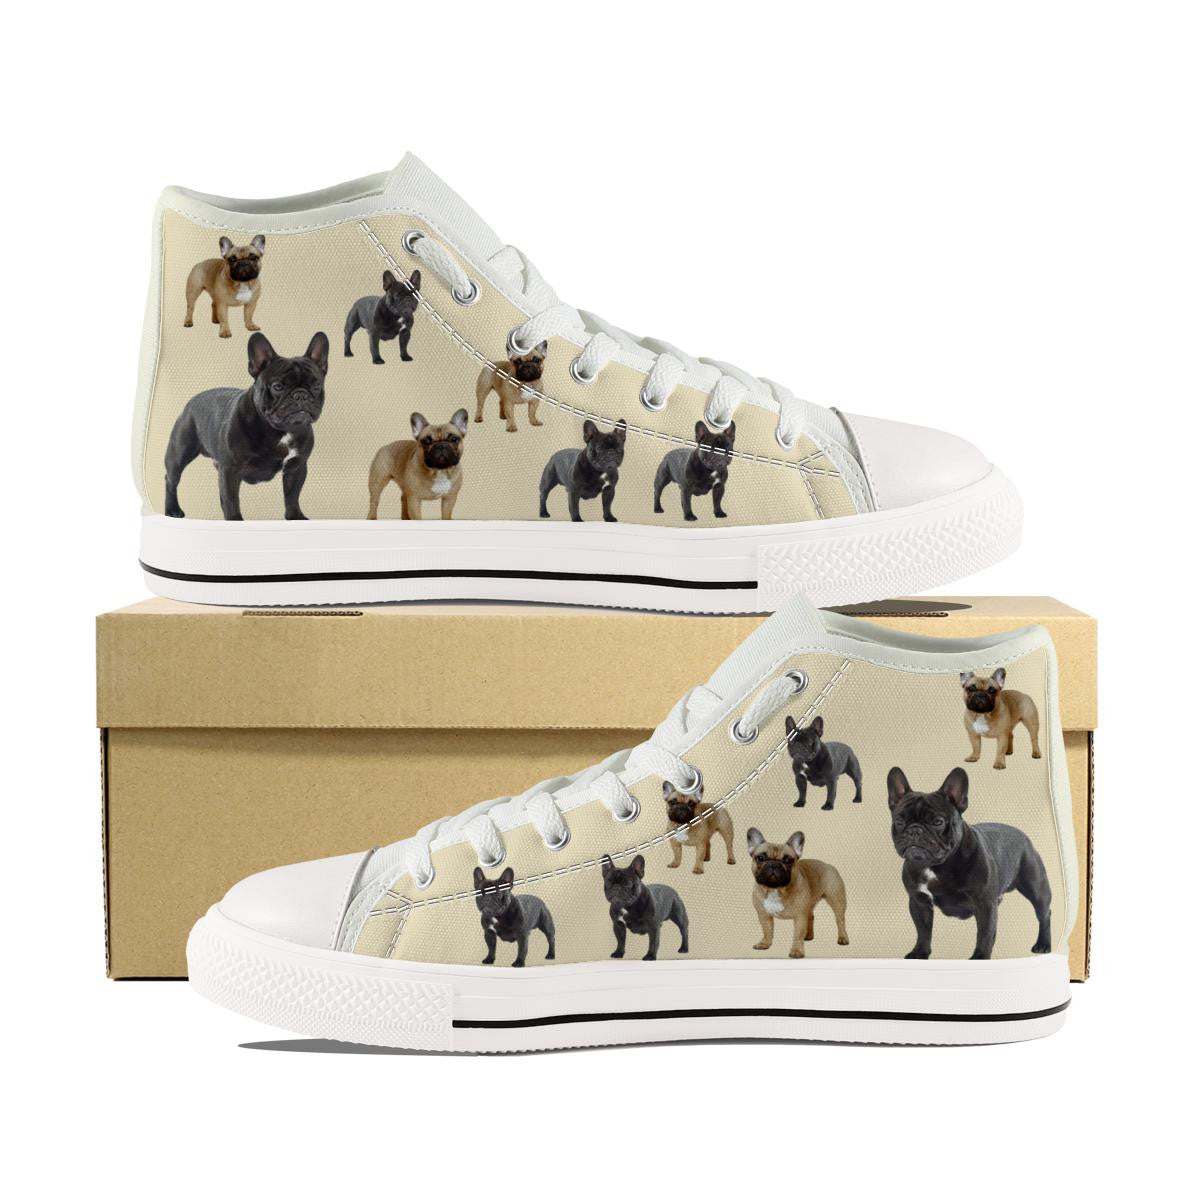 FRENCH BULLDOG CANVAS SHOES